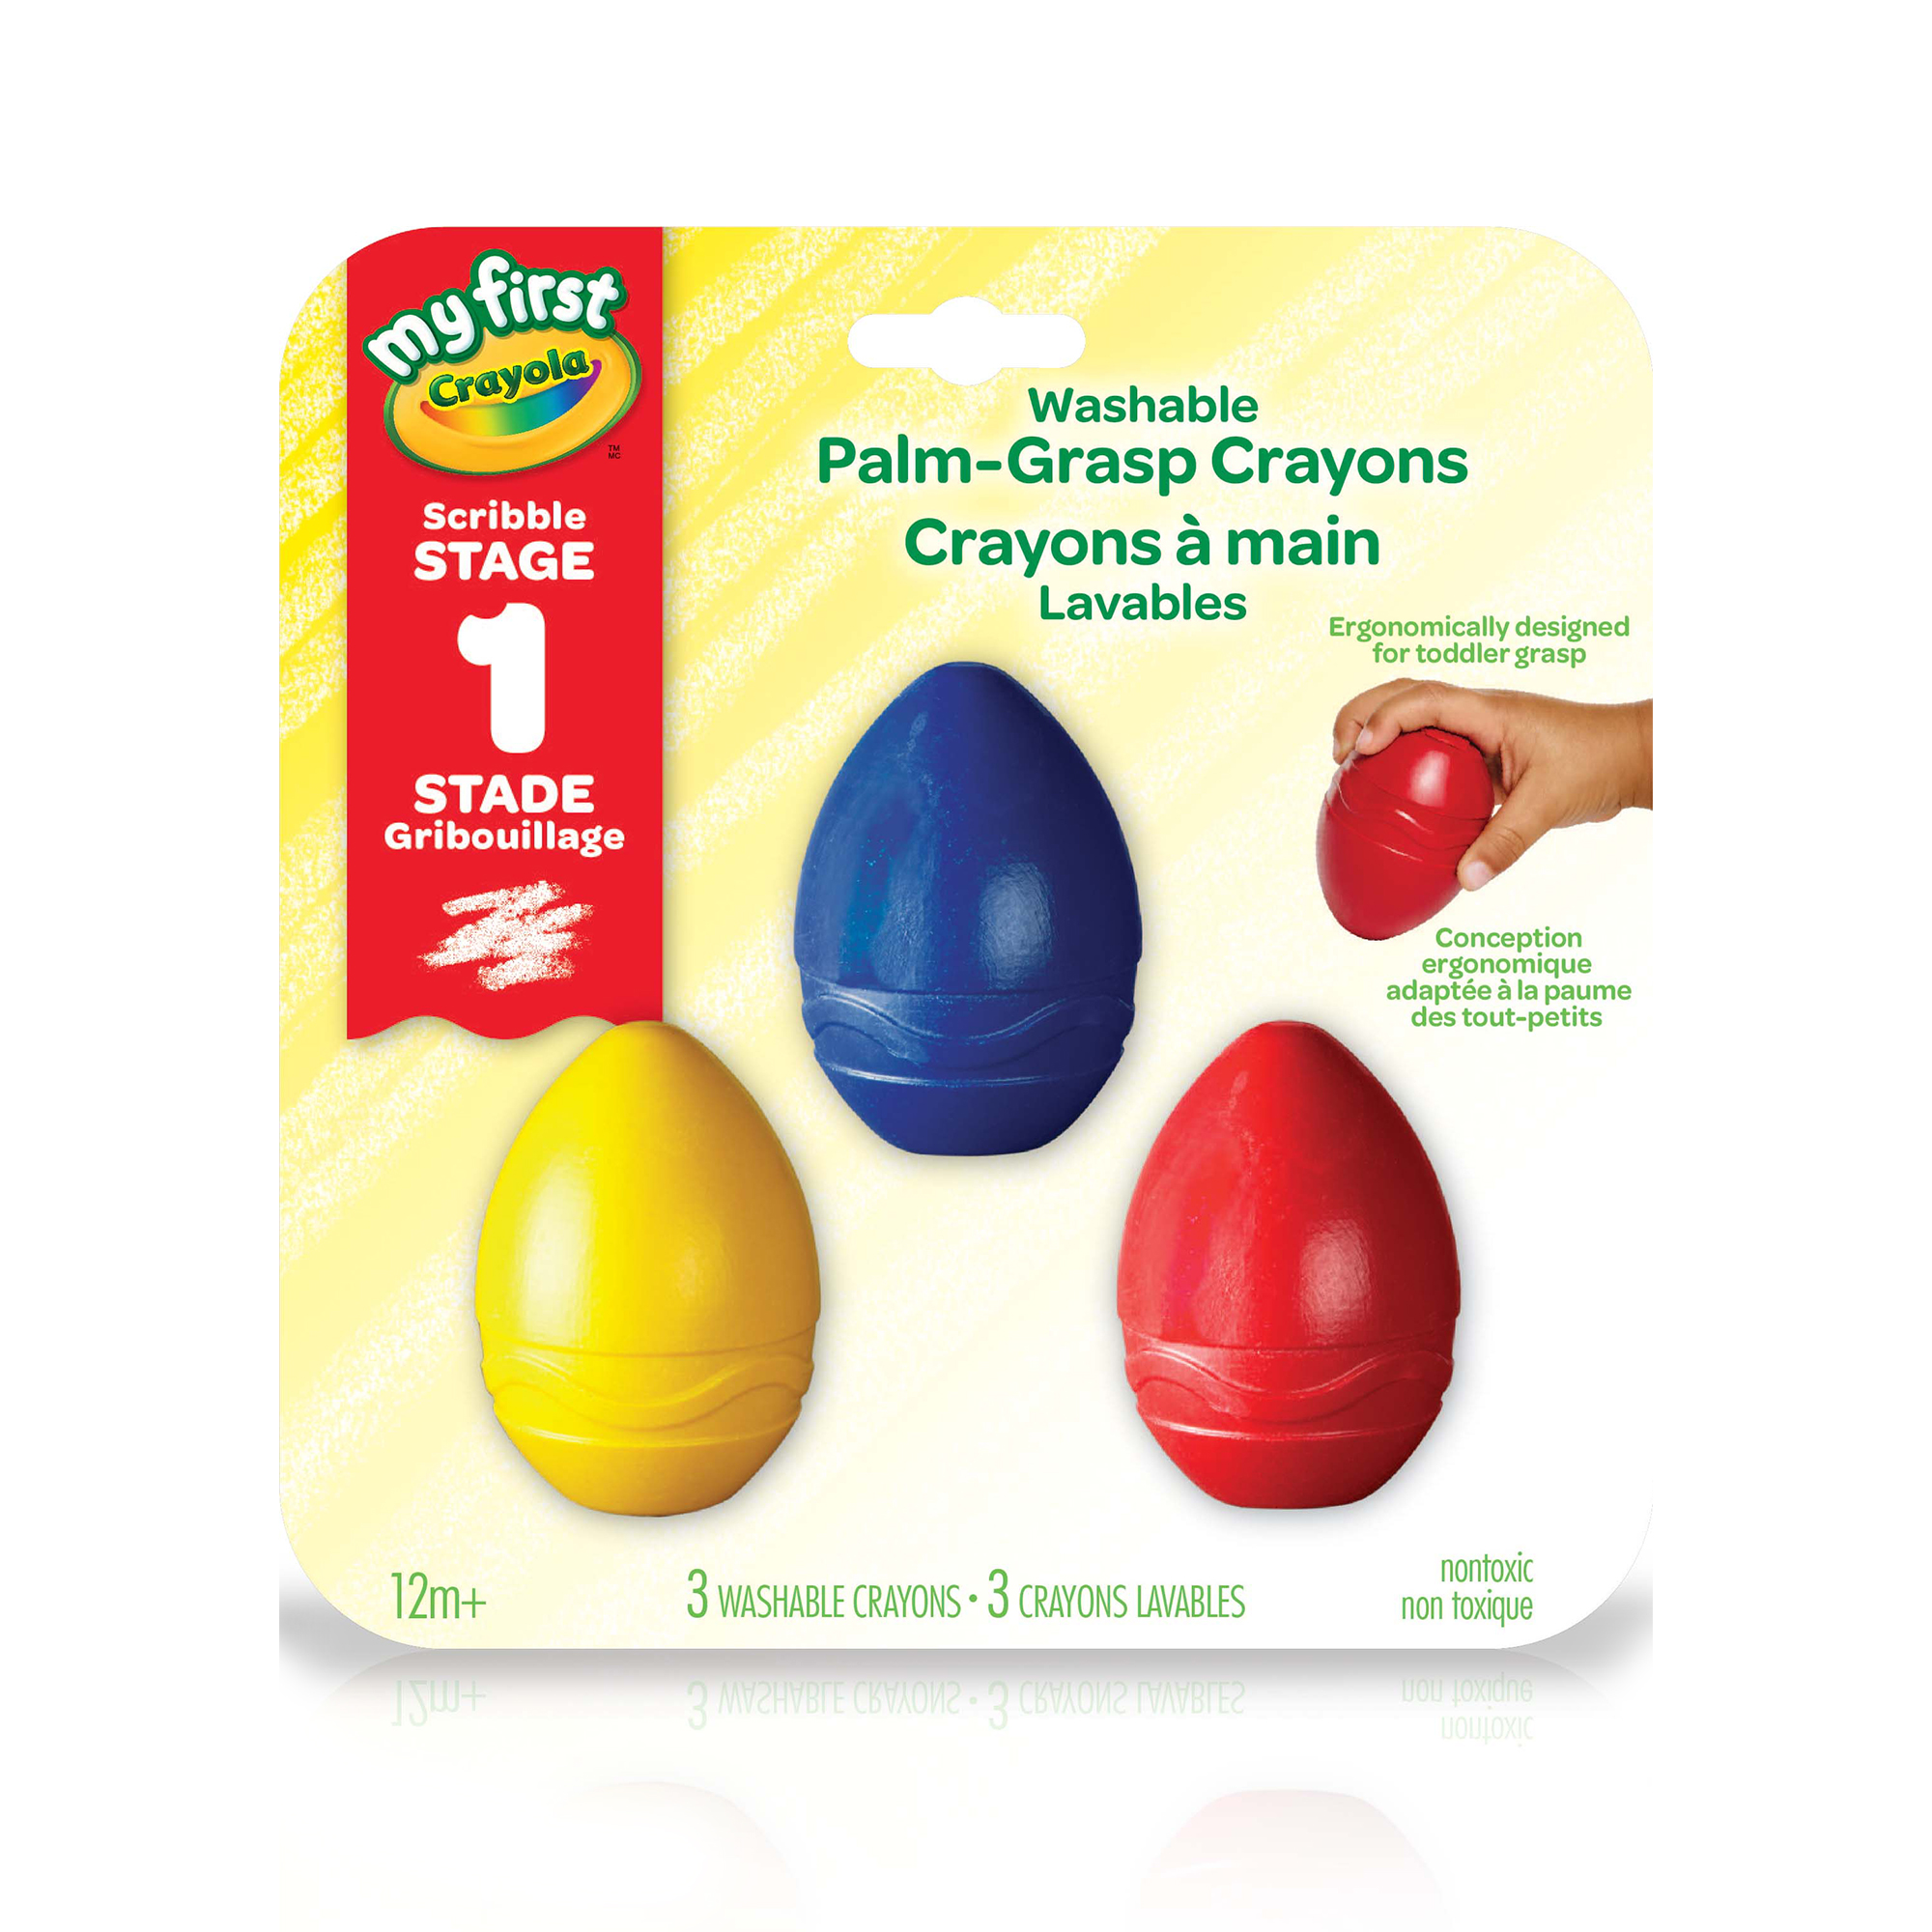 Palm-grasp crayons